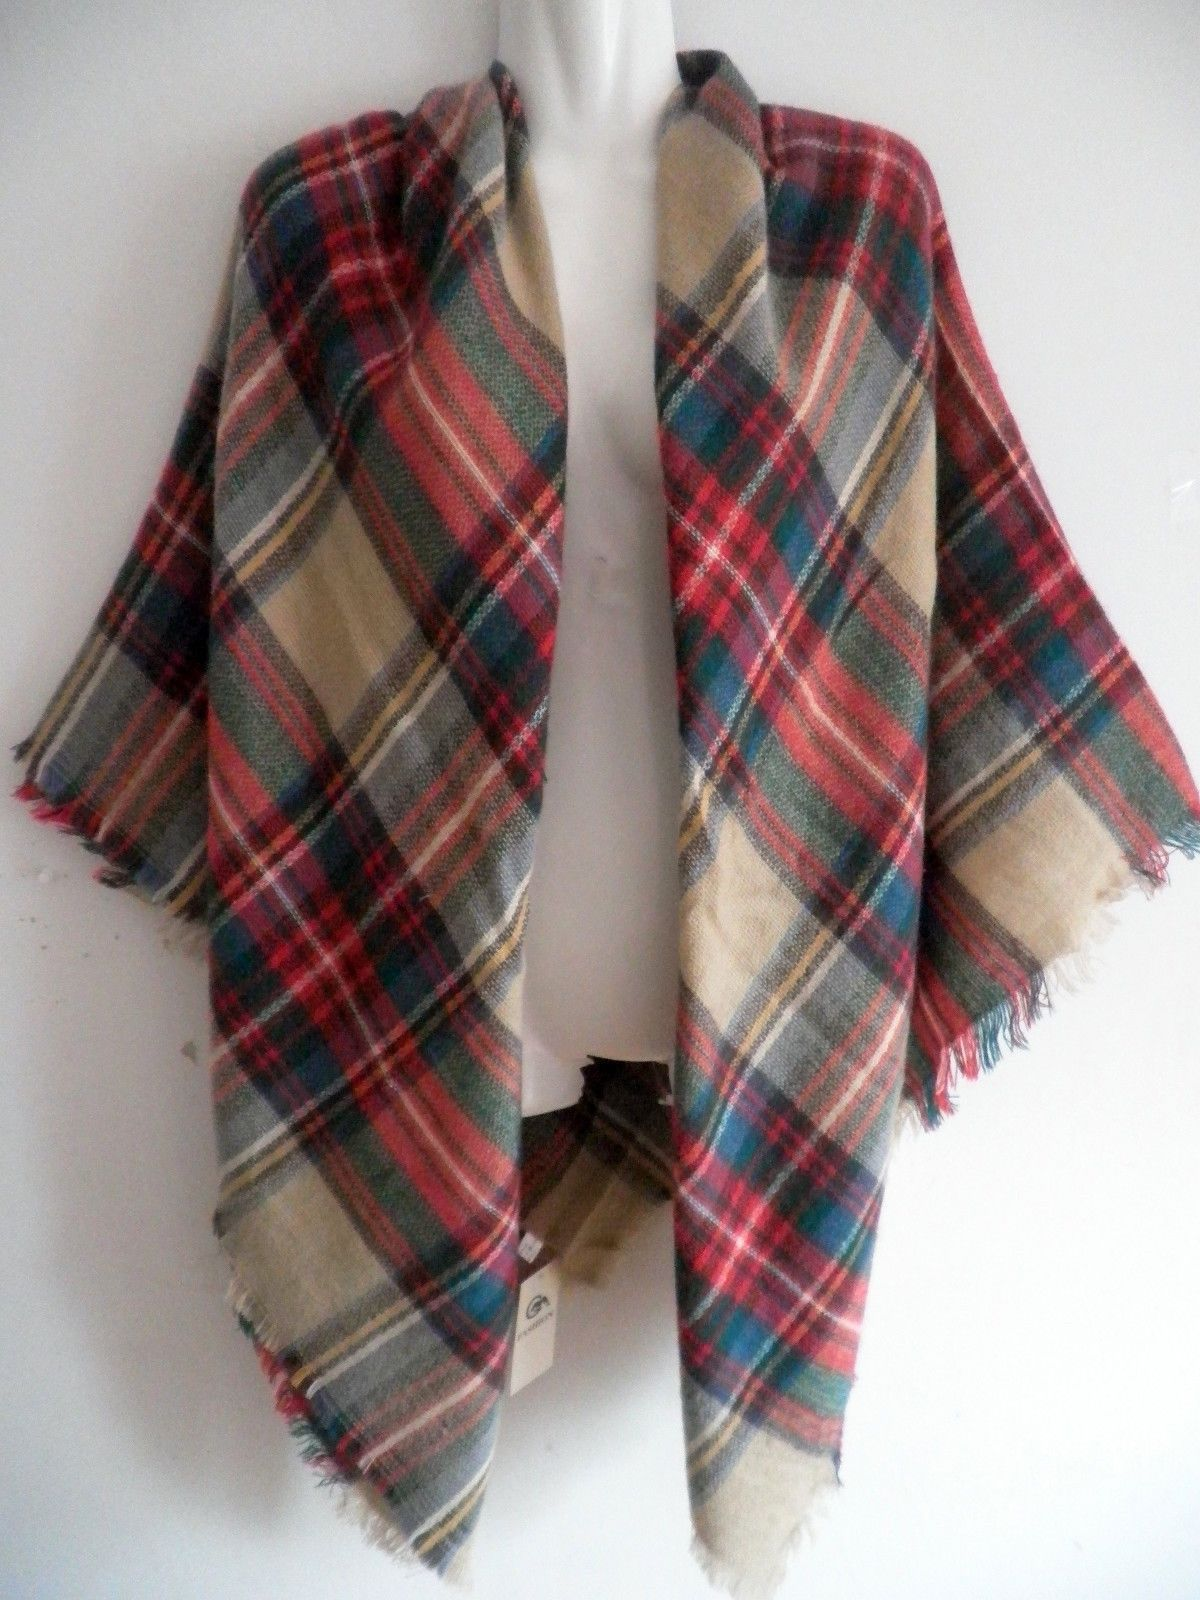 Brand New Gorgeous Warm Soft Scarf Blanket Wrap Shawl in a package